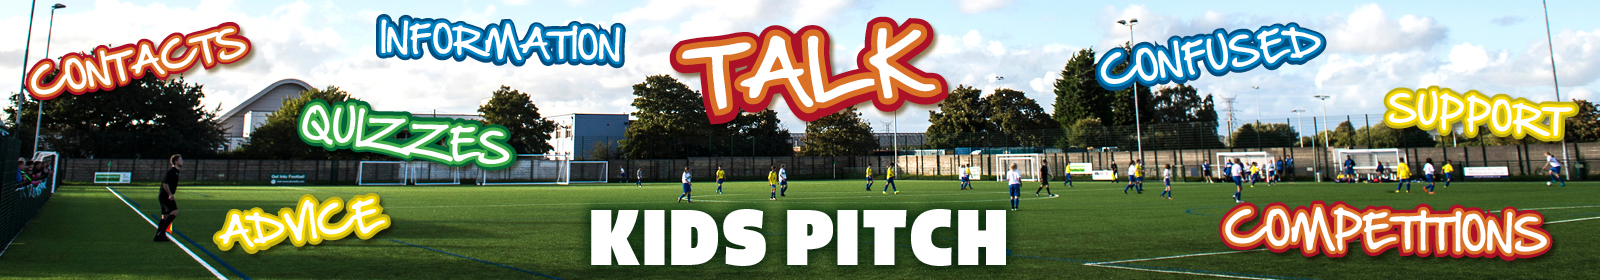 Kids Pitch Banner New